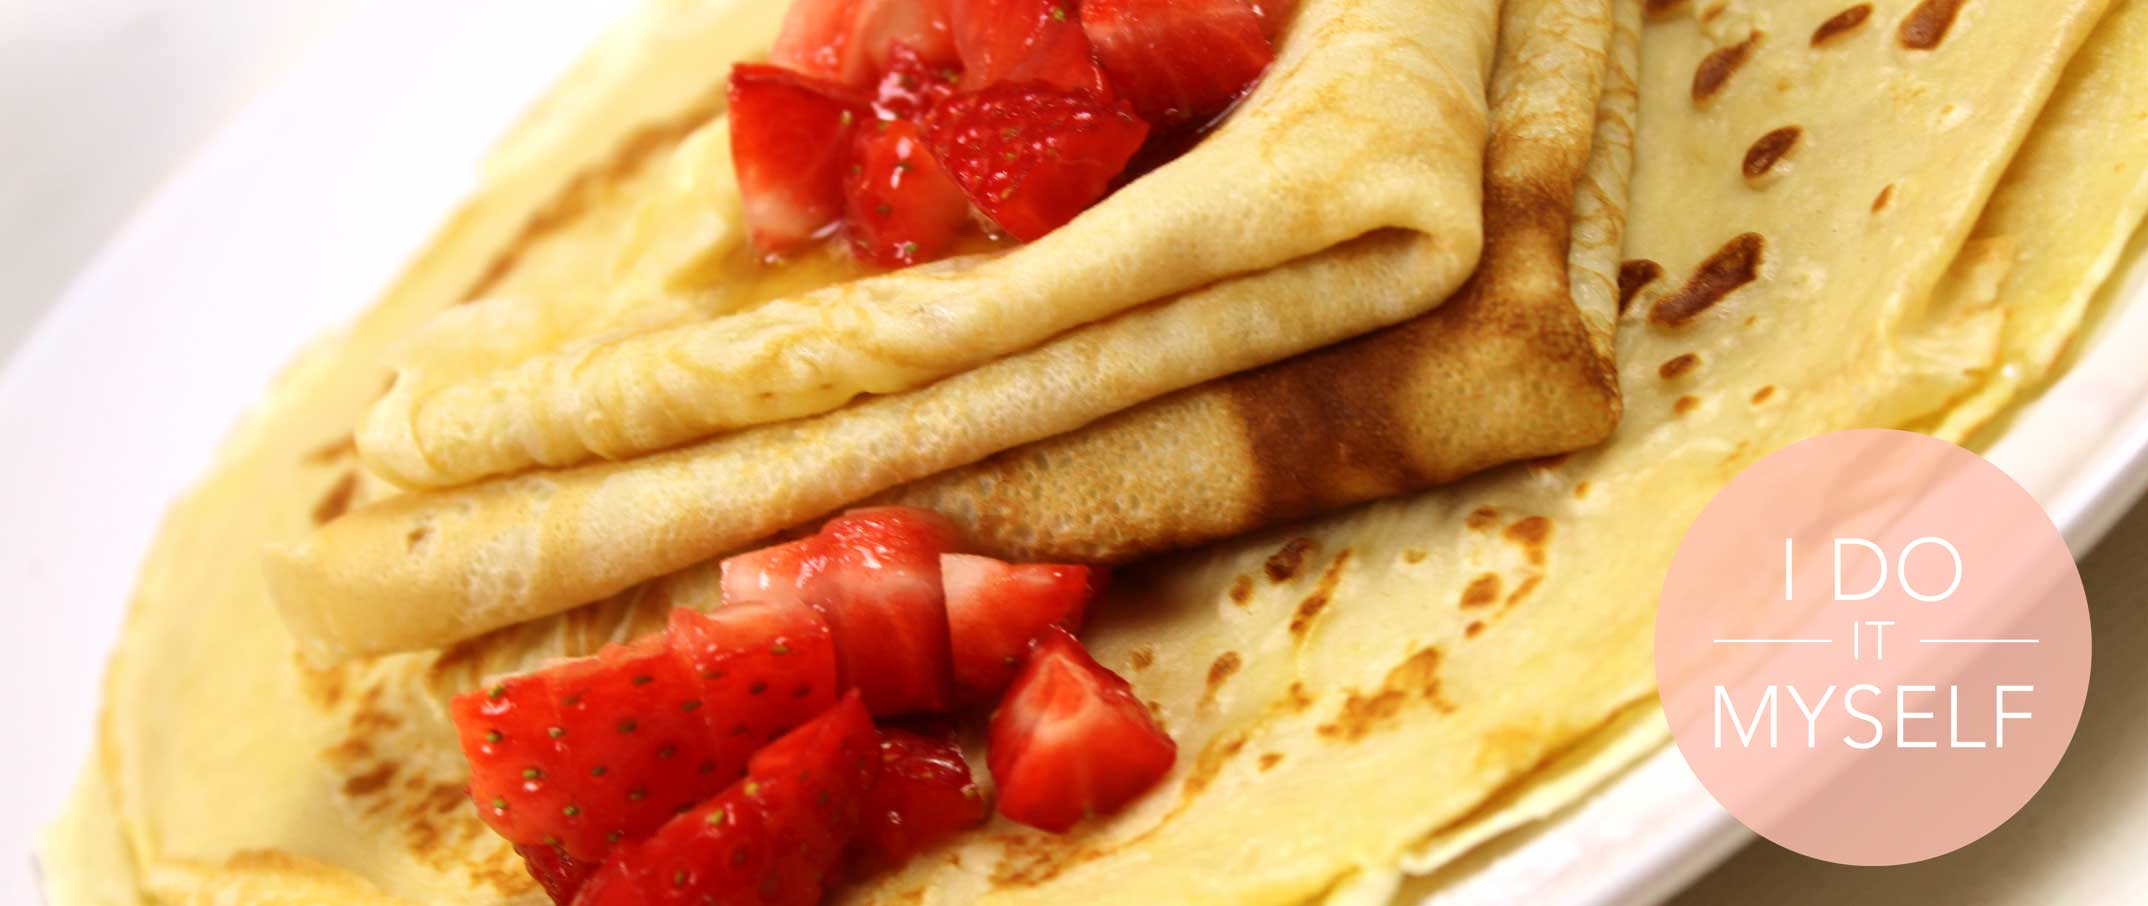 Cuisine : Mes crepes